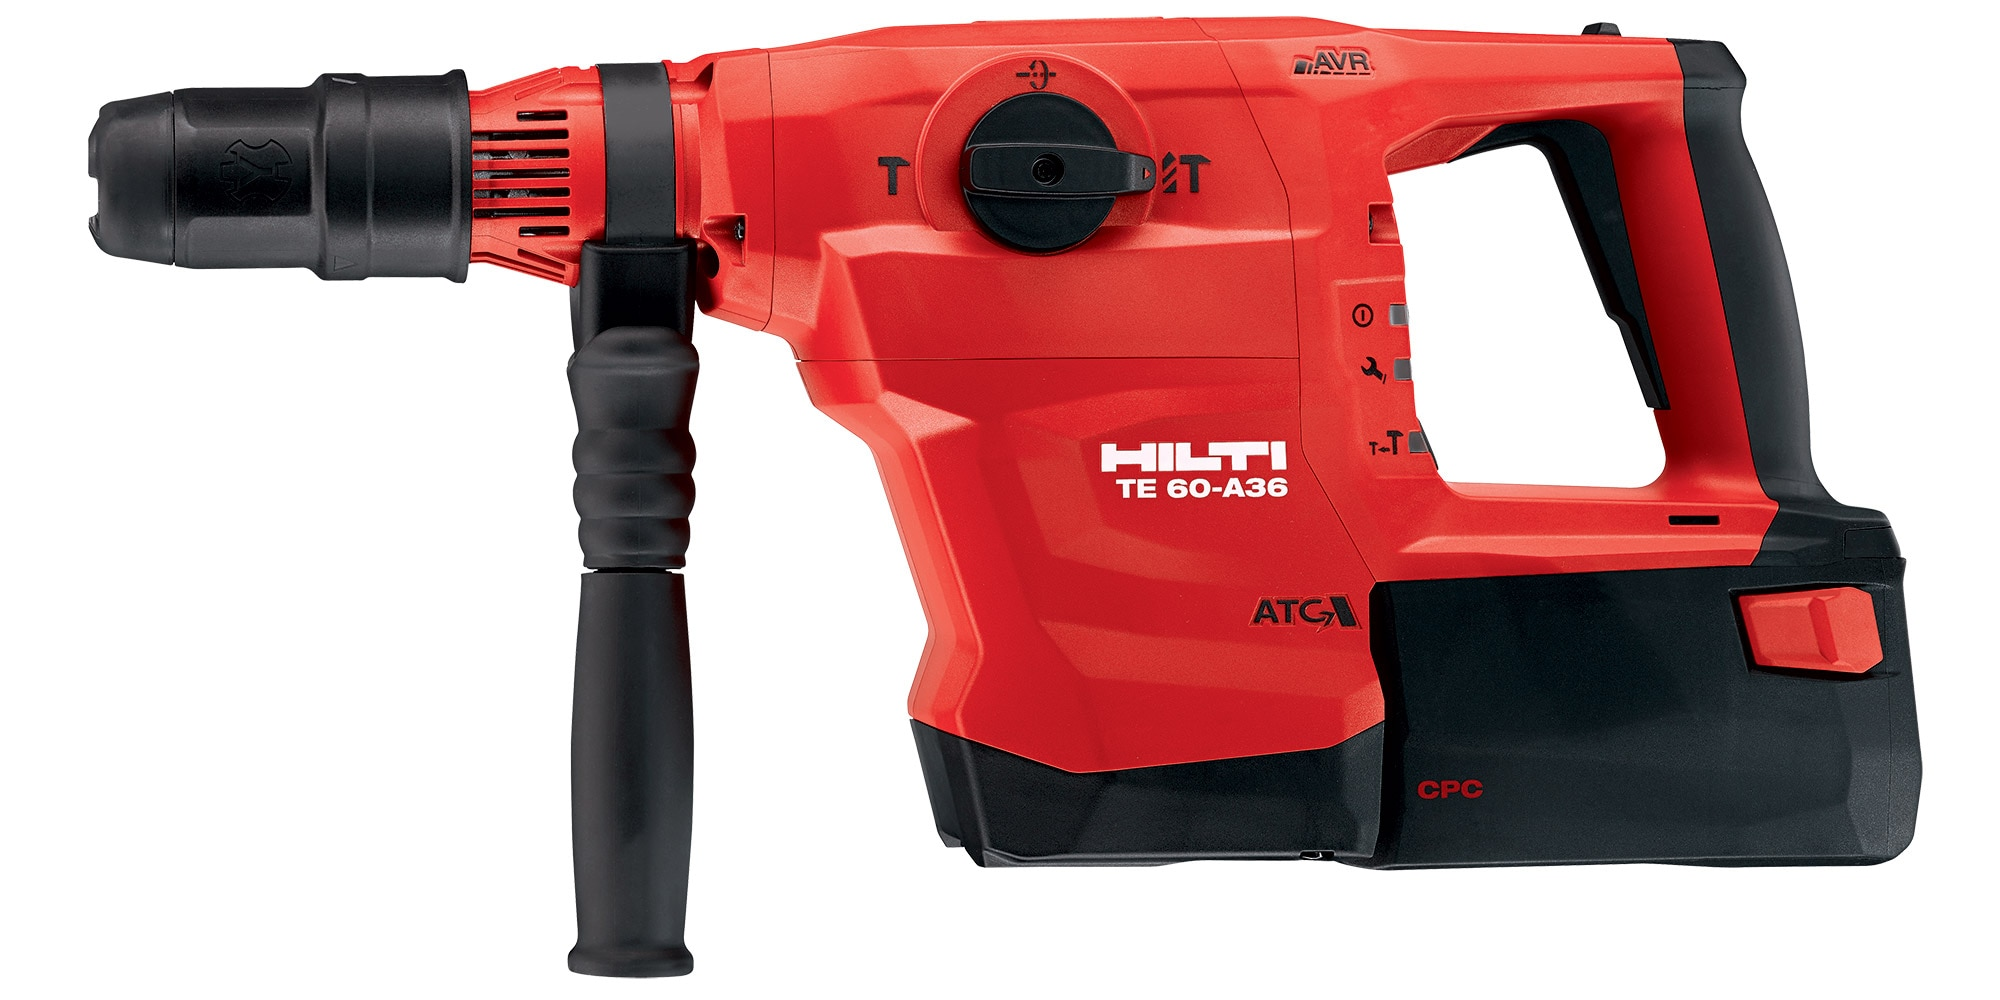 TE 60-A36 Cordless Combihammer